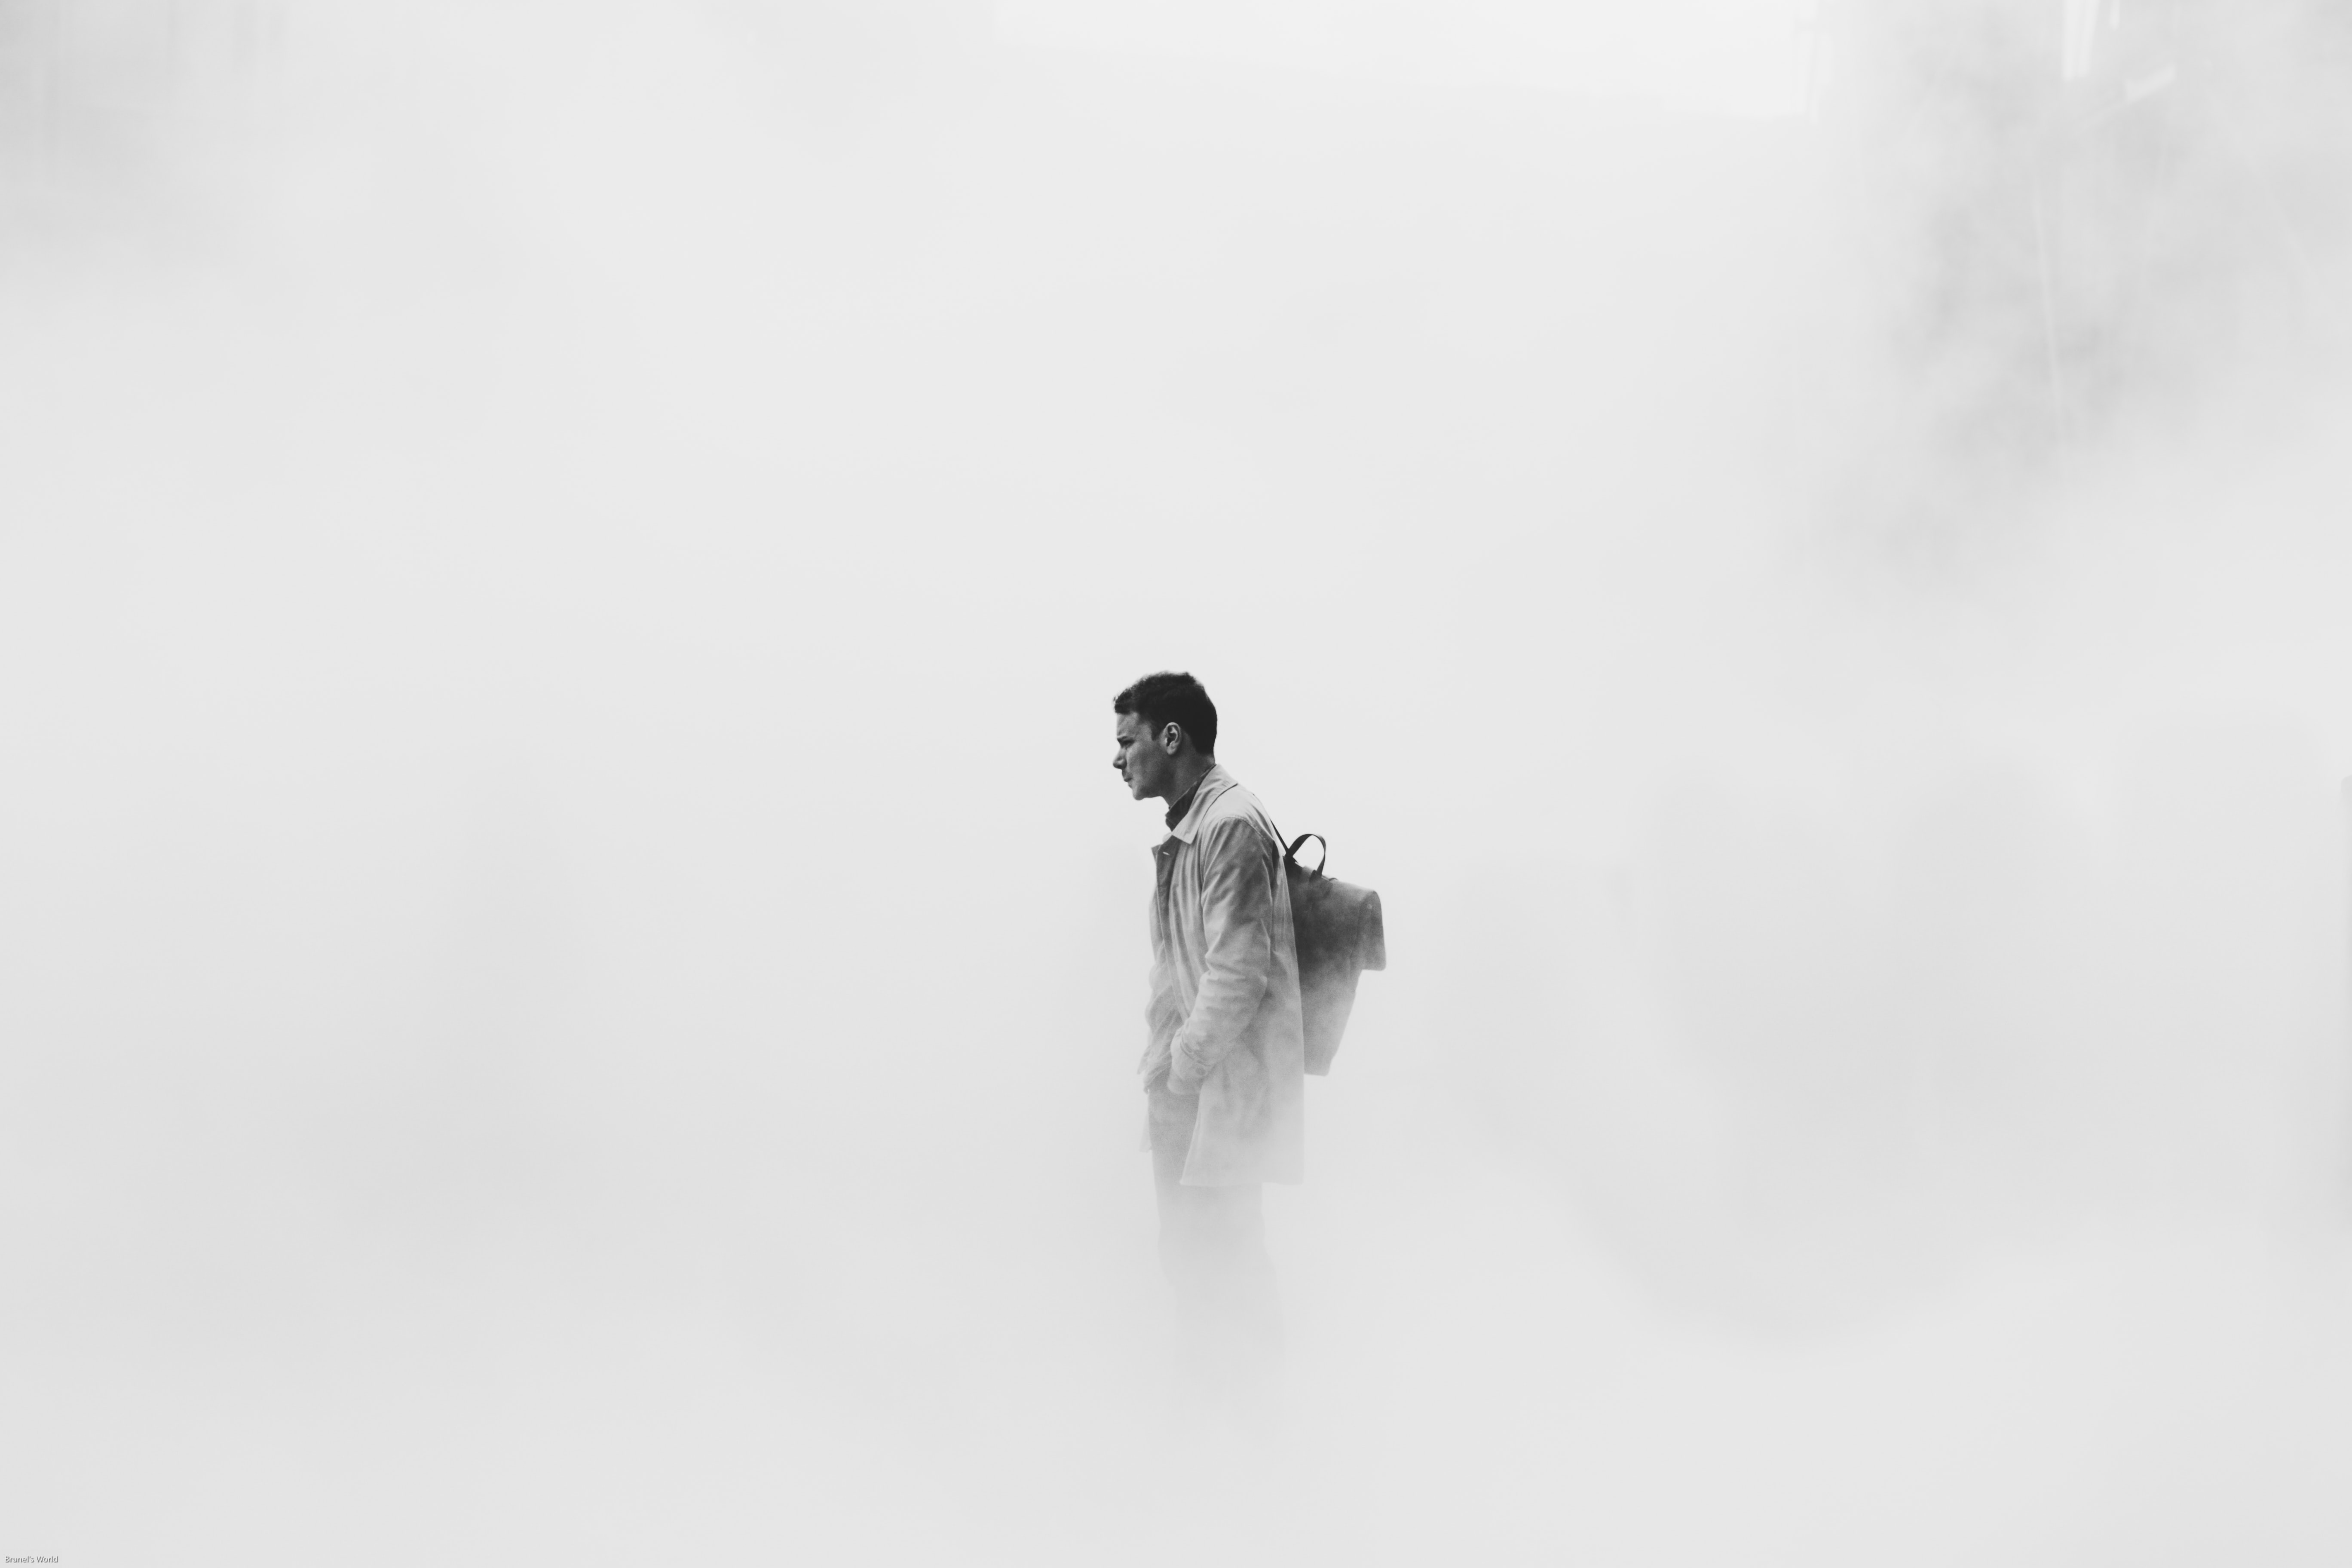 grayscale photo of man surrounded by fogs